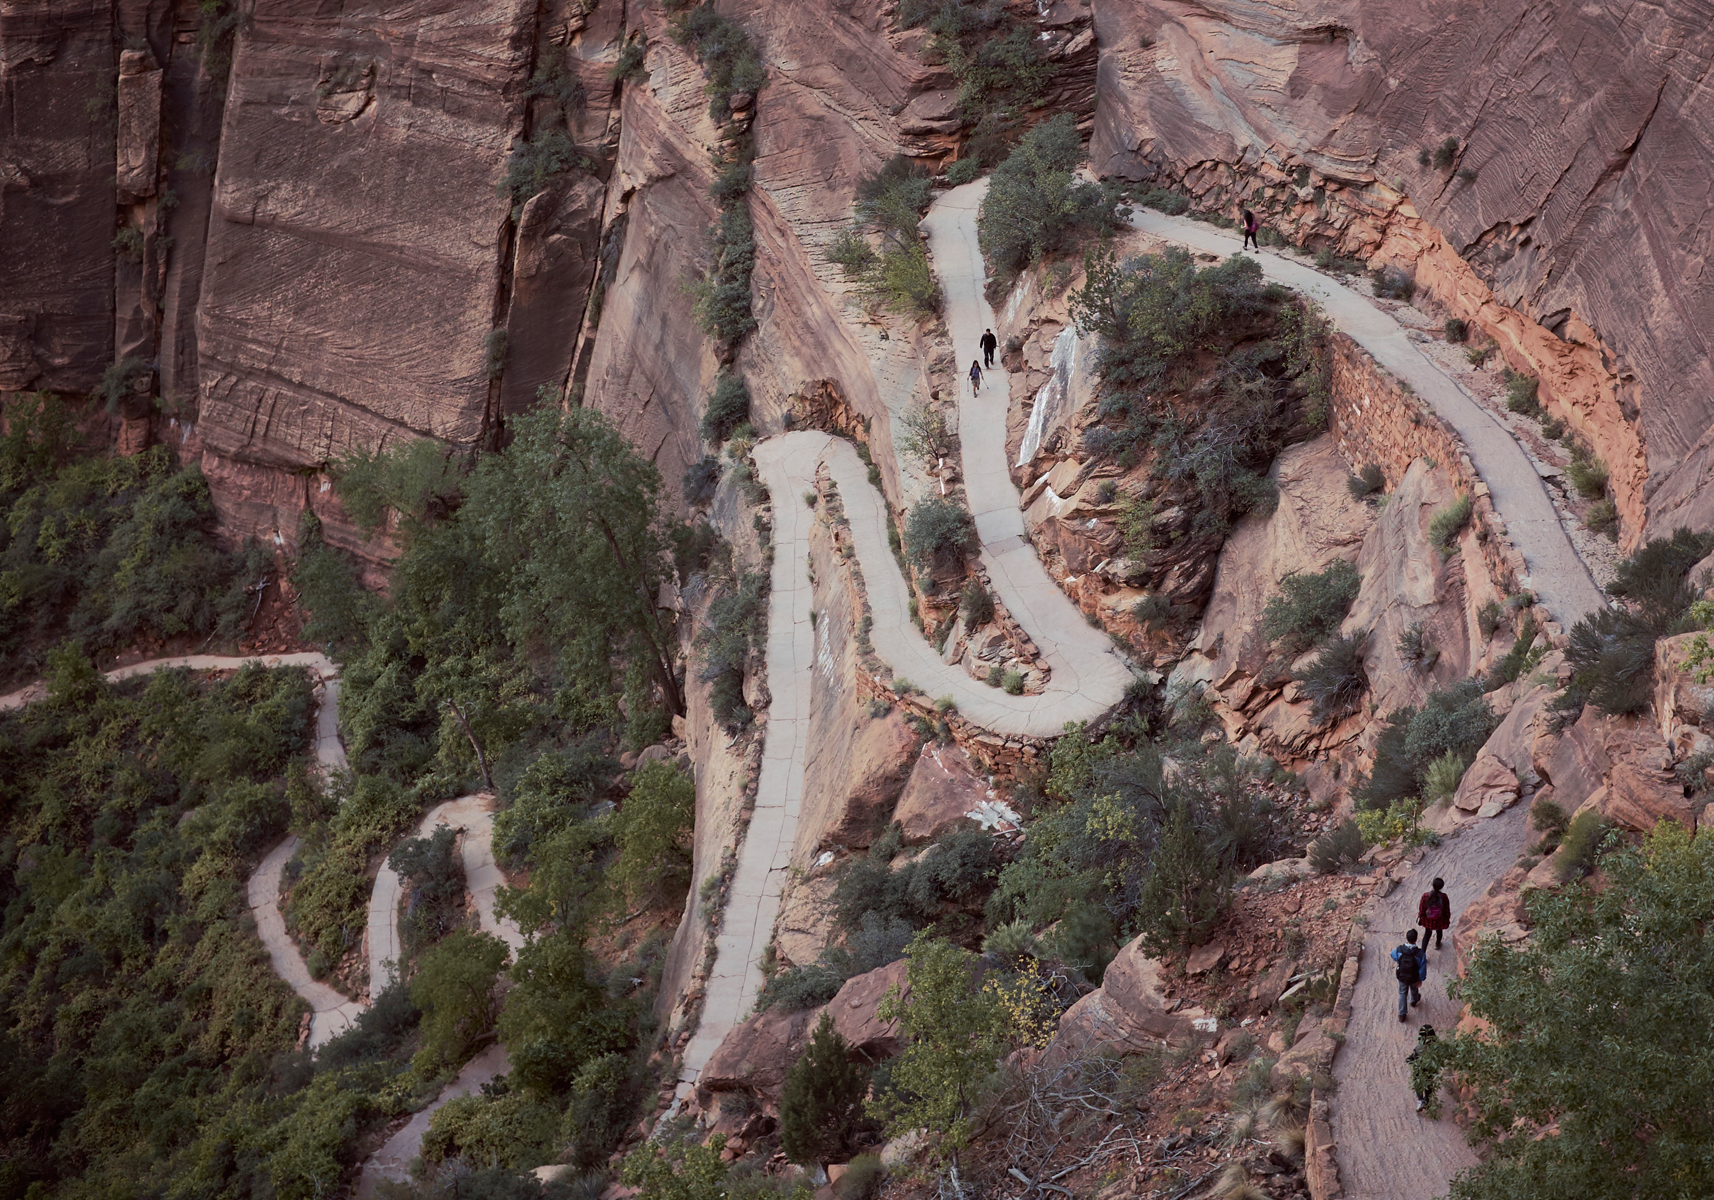 People on the switchbacks at the start of the Angels Landing trail in Zion. Kirsty Owen photography